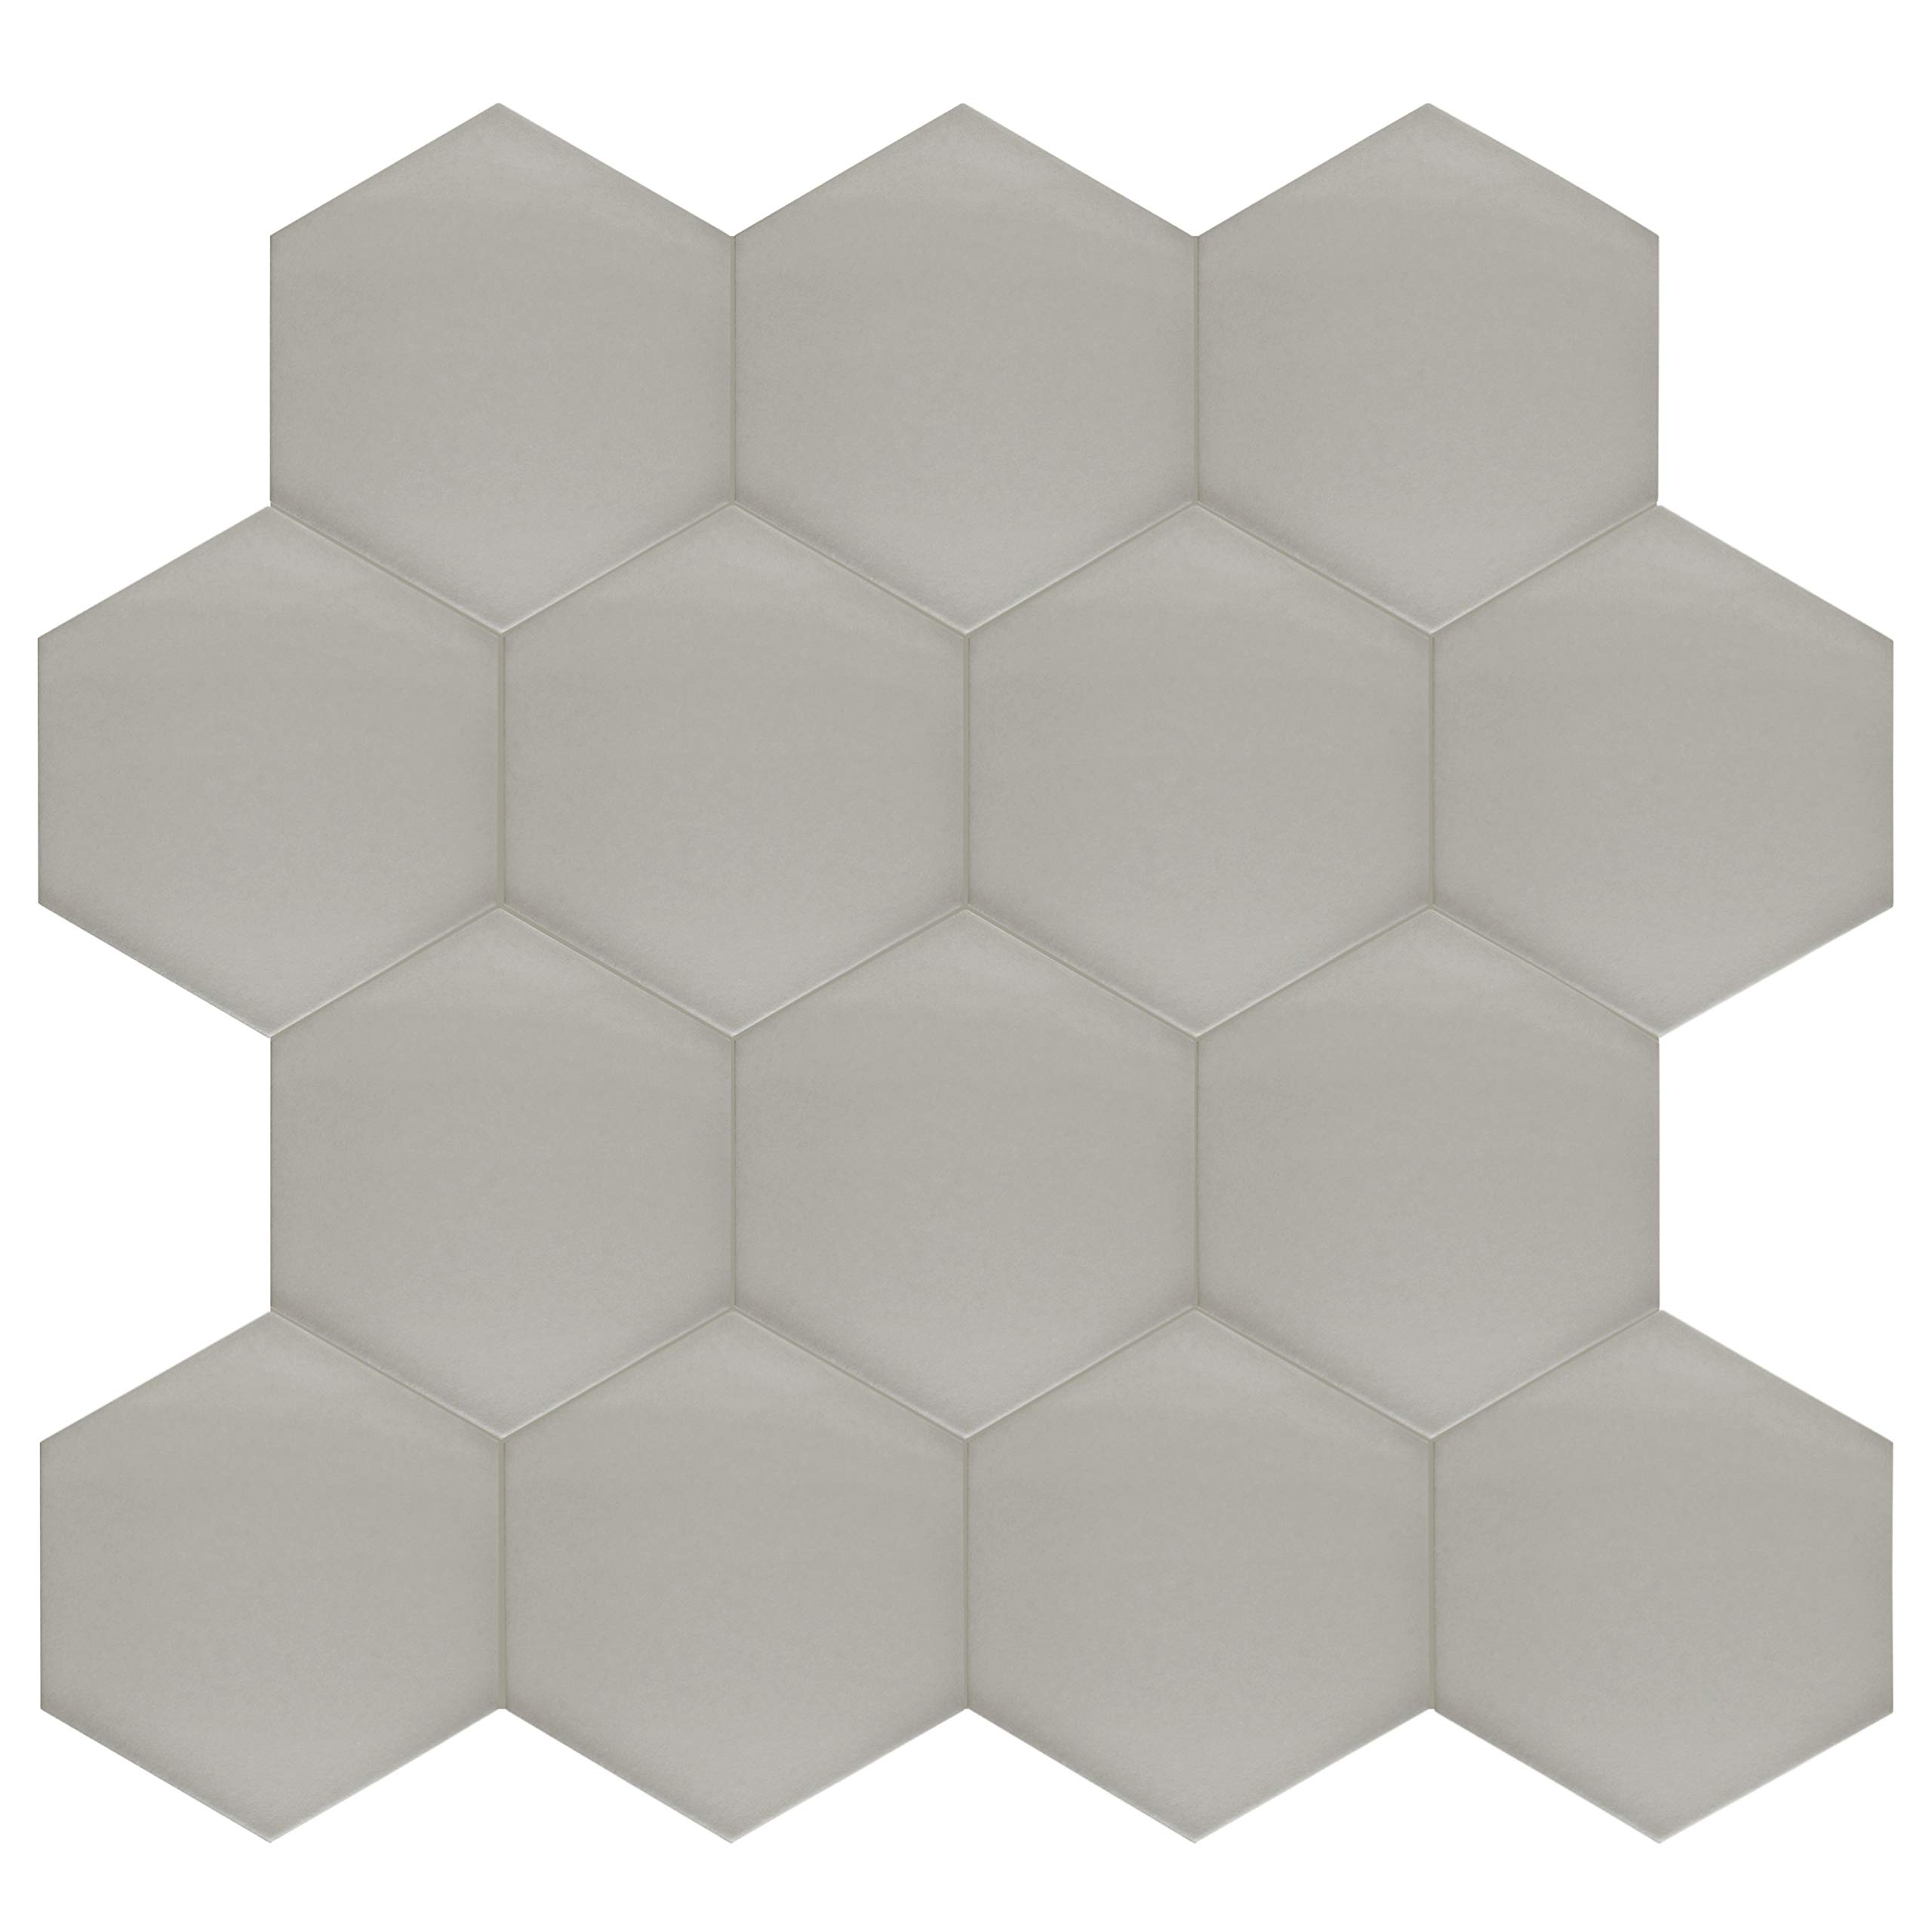 SomerTile FCD10STX Abrique Hex Porcelain Floor and Wall, 8.63'' x 9.88'', Silver Tile 8.625'' x 9.875'' 25 Piece by SOMERTILE (Image #11)